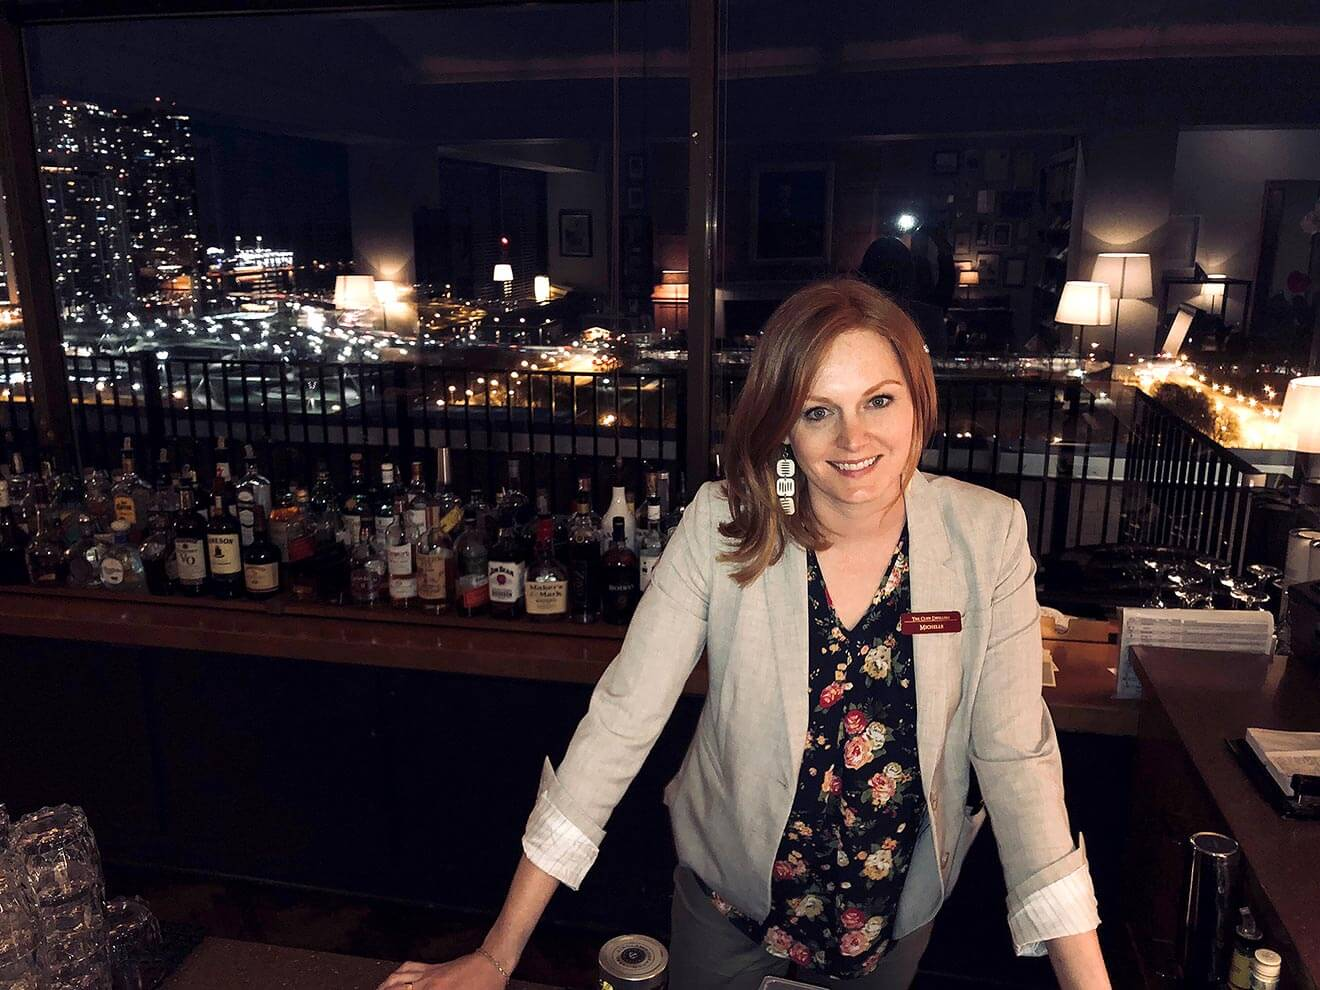 Michelle FitzGerald, behind the bar